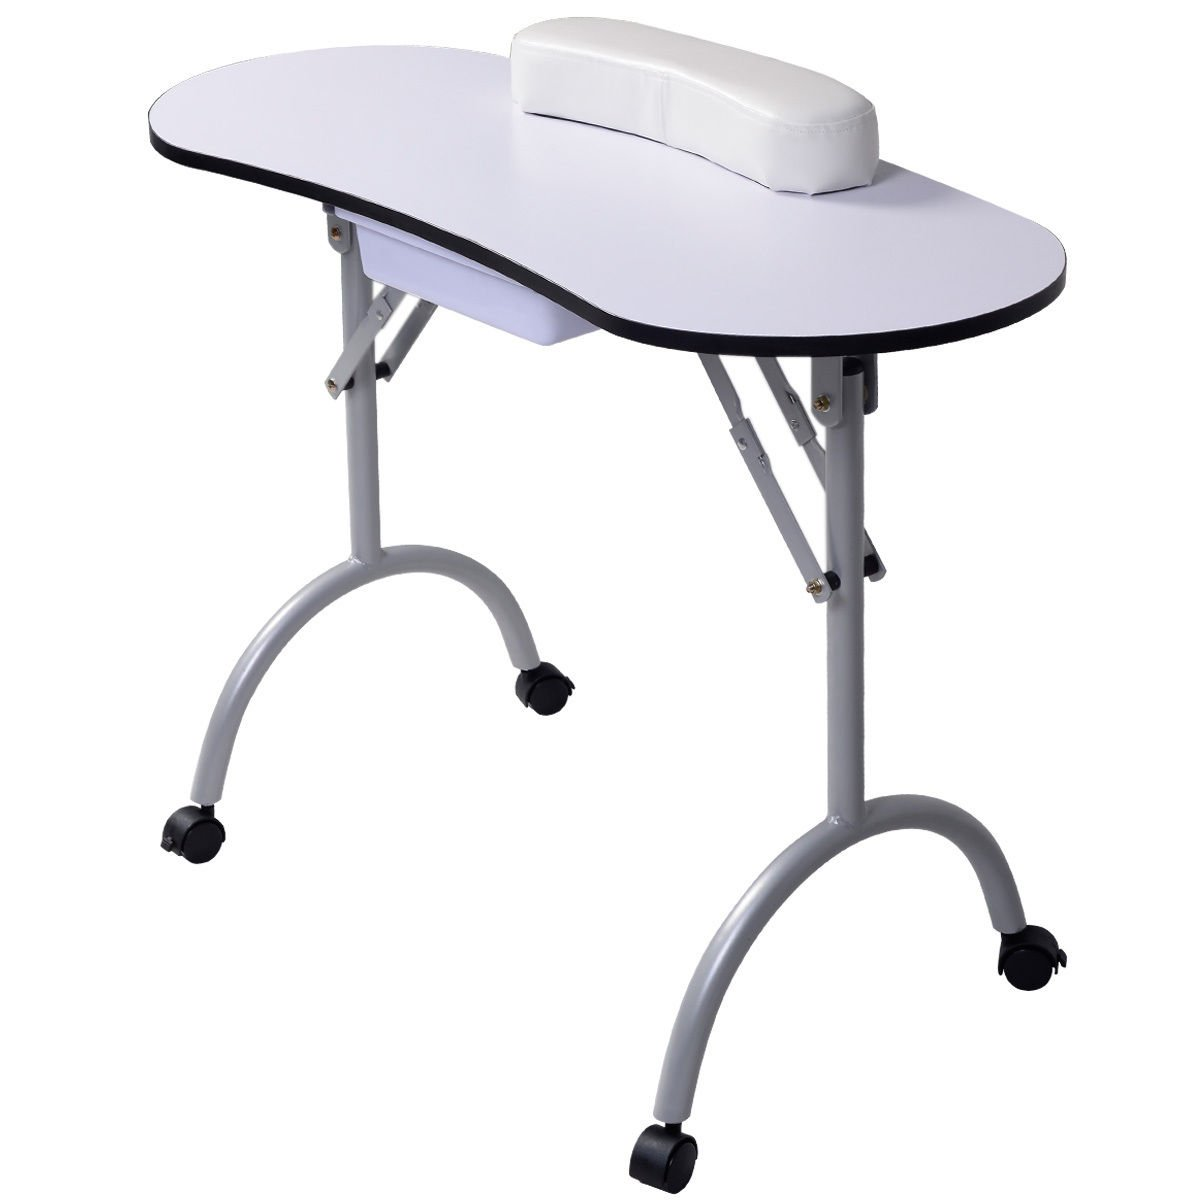 New Portable Manicure Nail Table Station Desk Spa Beauty Salon Equipment White by Unbranded (Image #2)